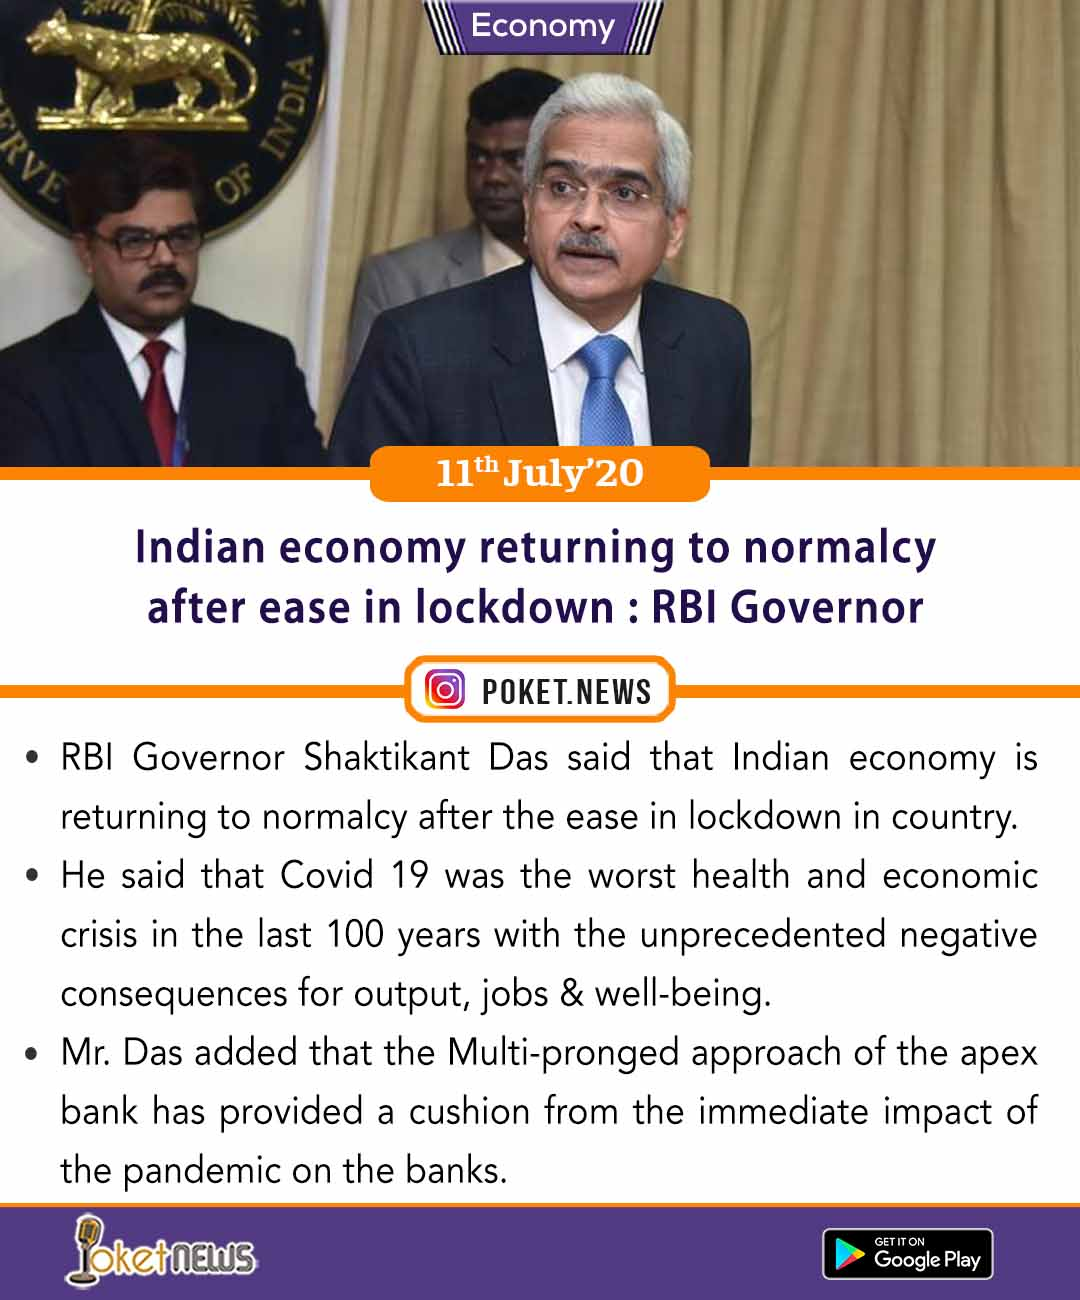 Indian economy returning to normalcy after ease in lockdown : RBI Governor